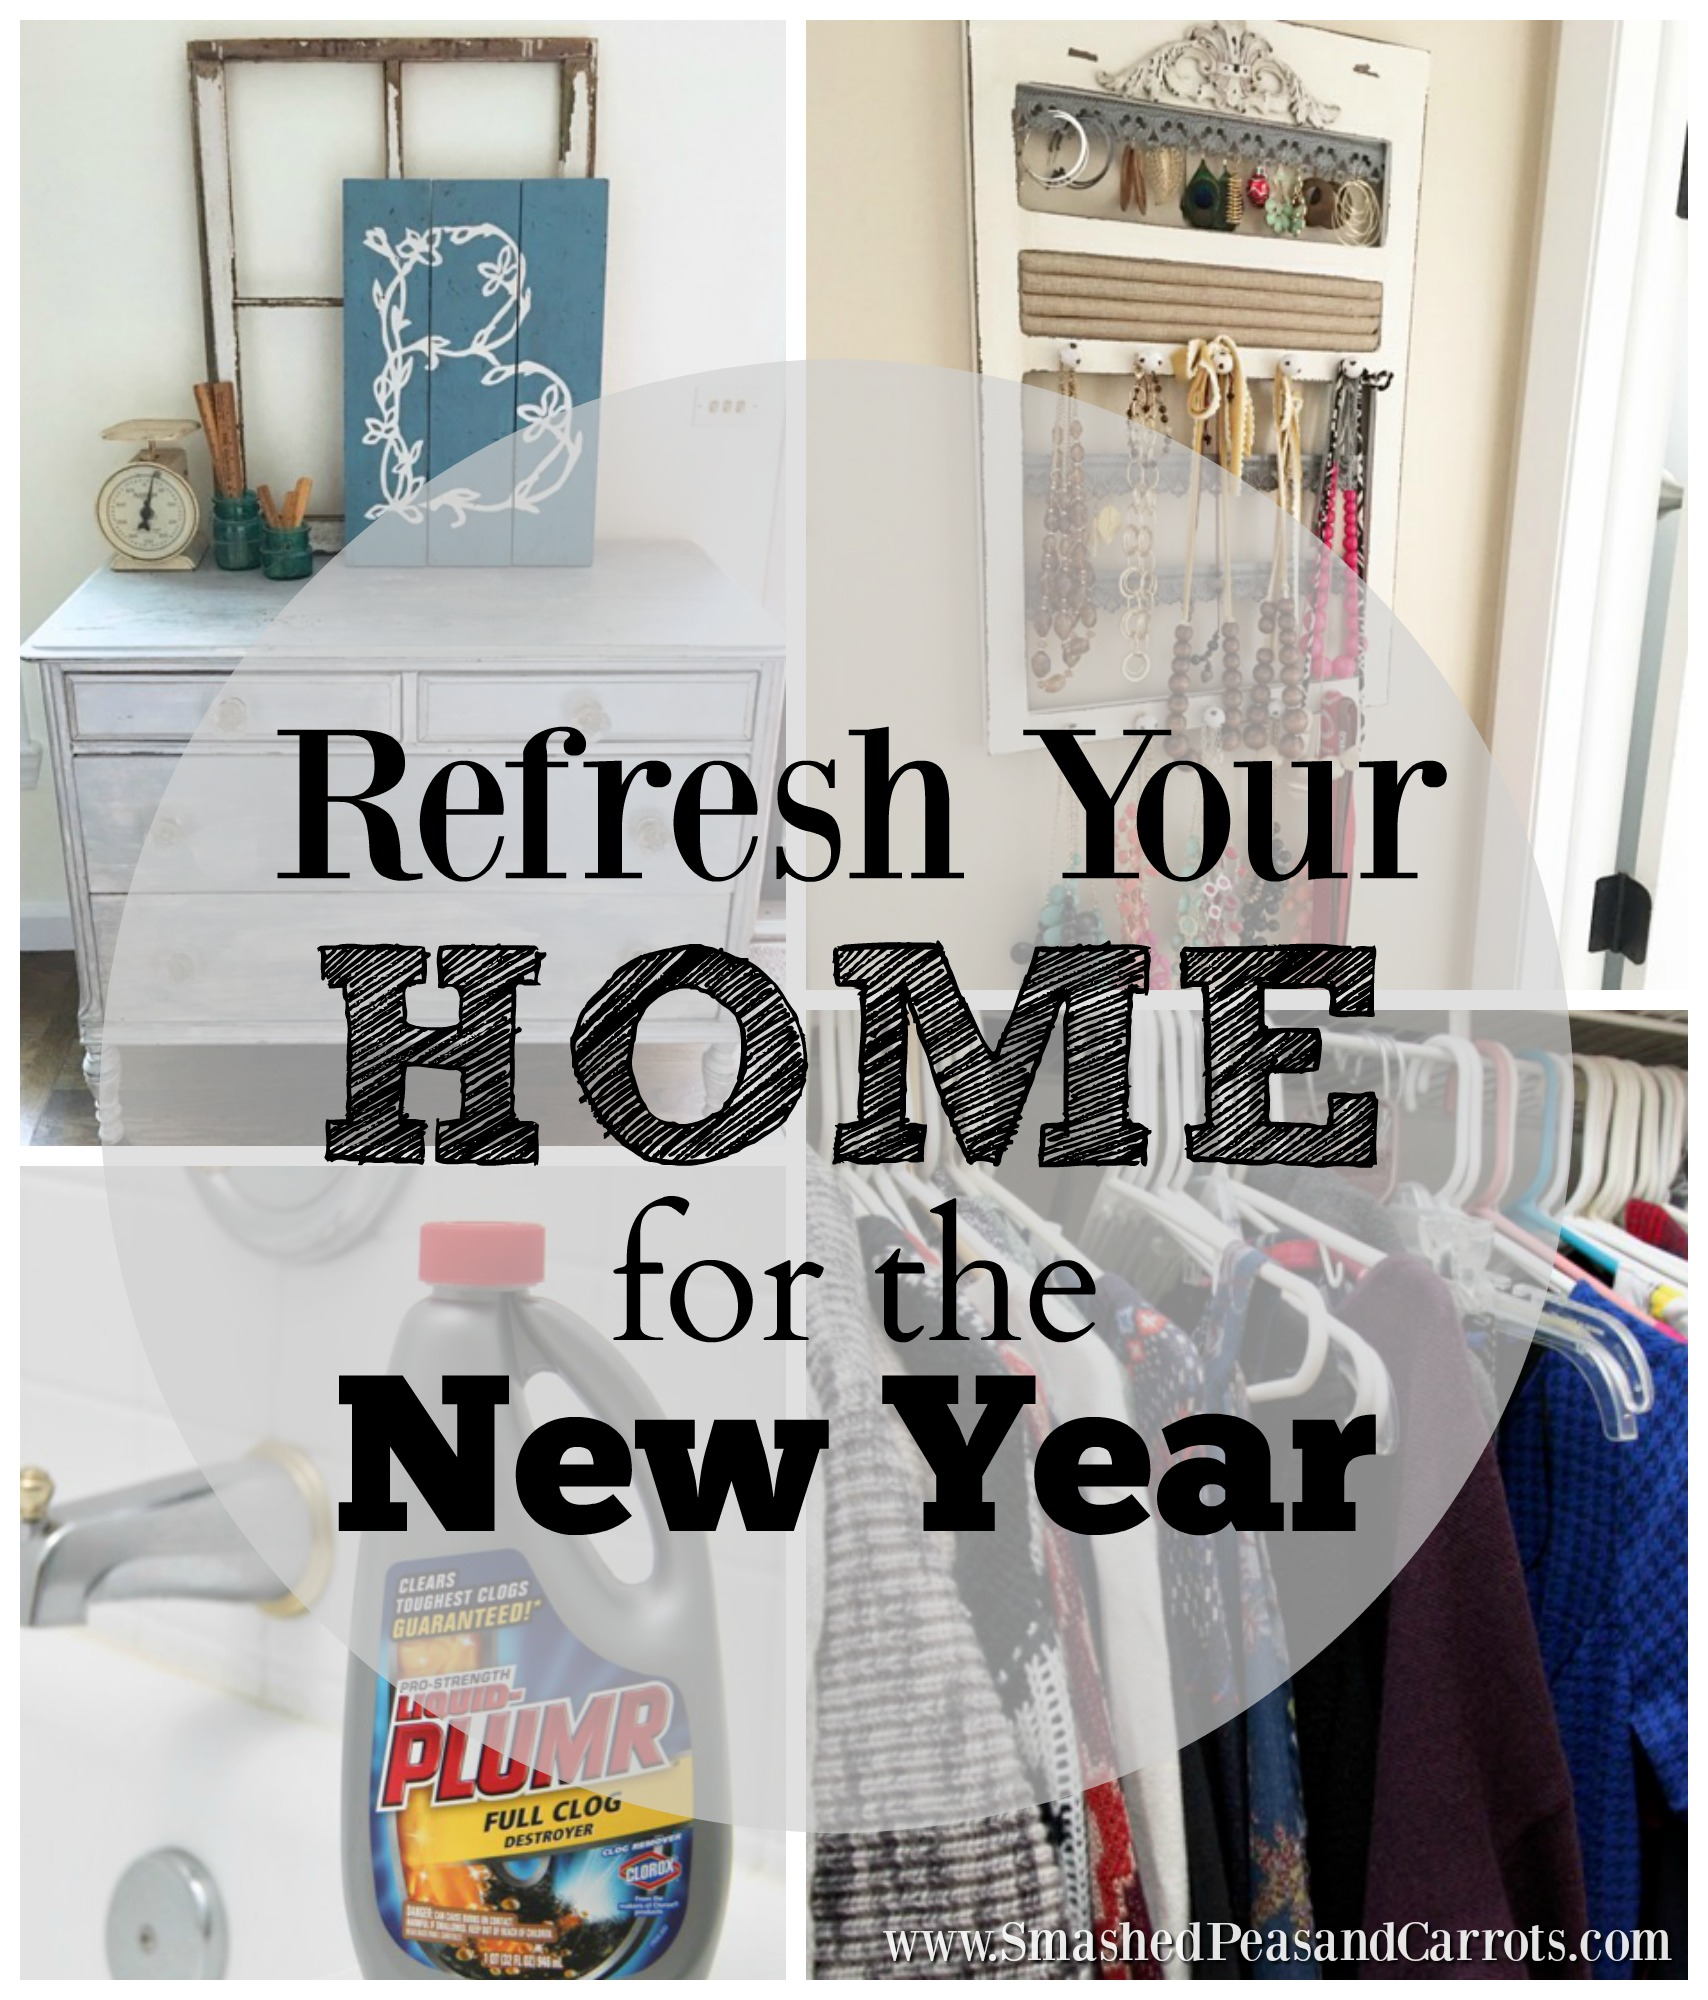 Refresh Your Home for the New Year